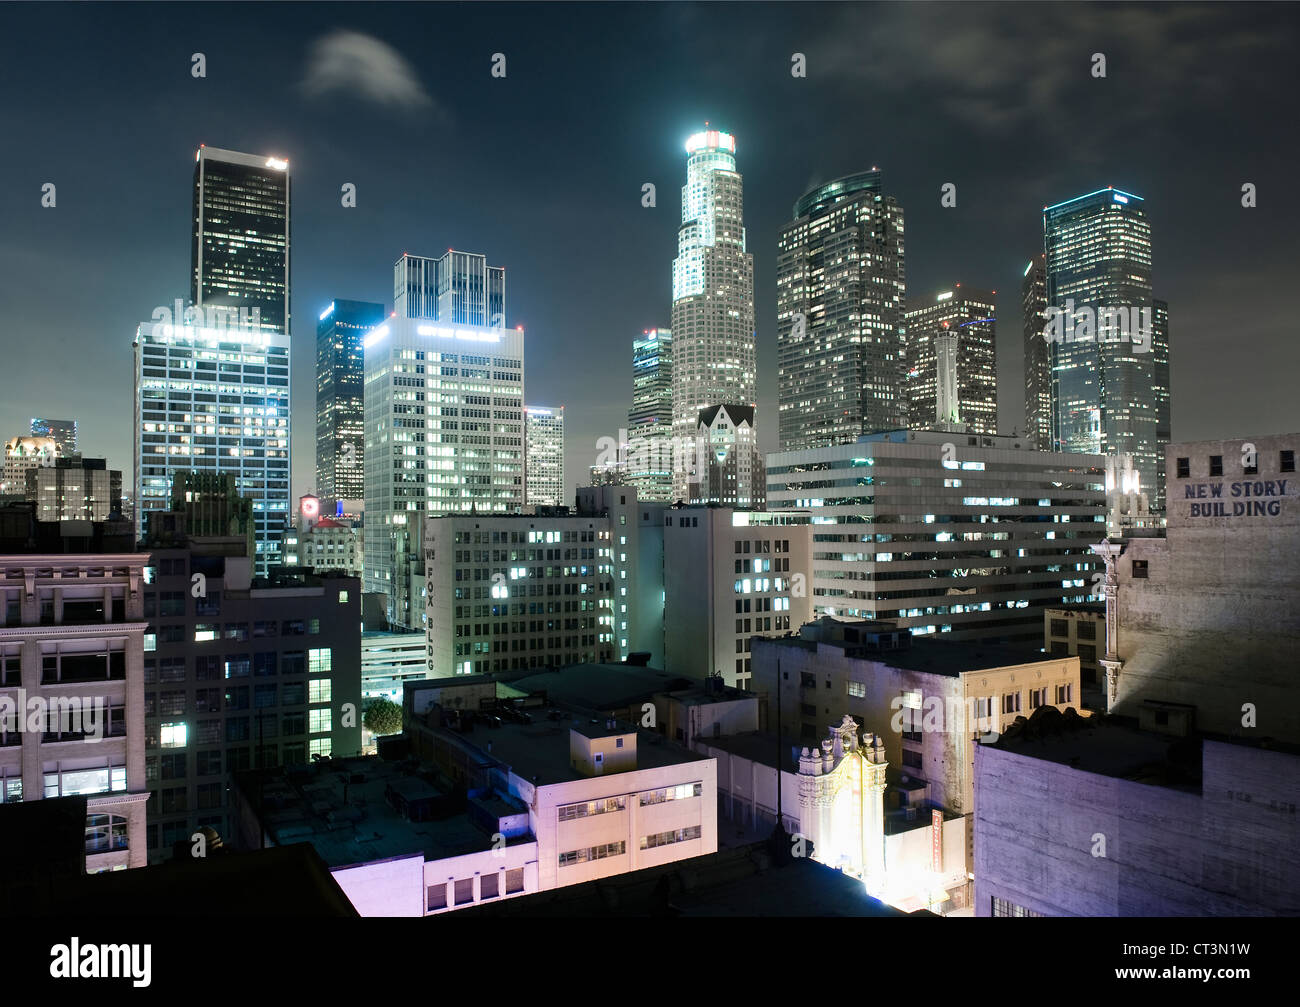 Los Angeles skyscrapers lit up at night Stock Photo